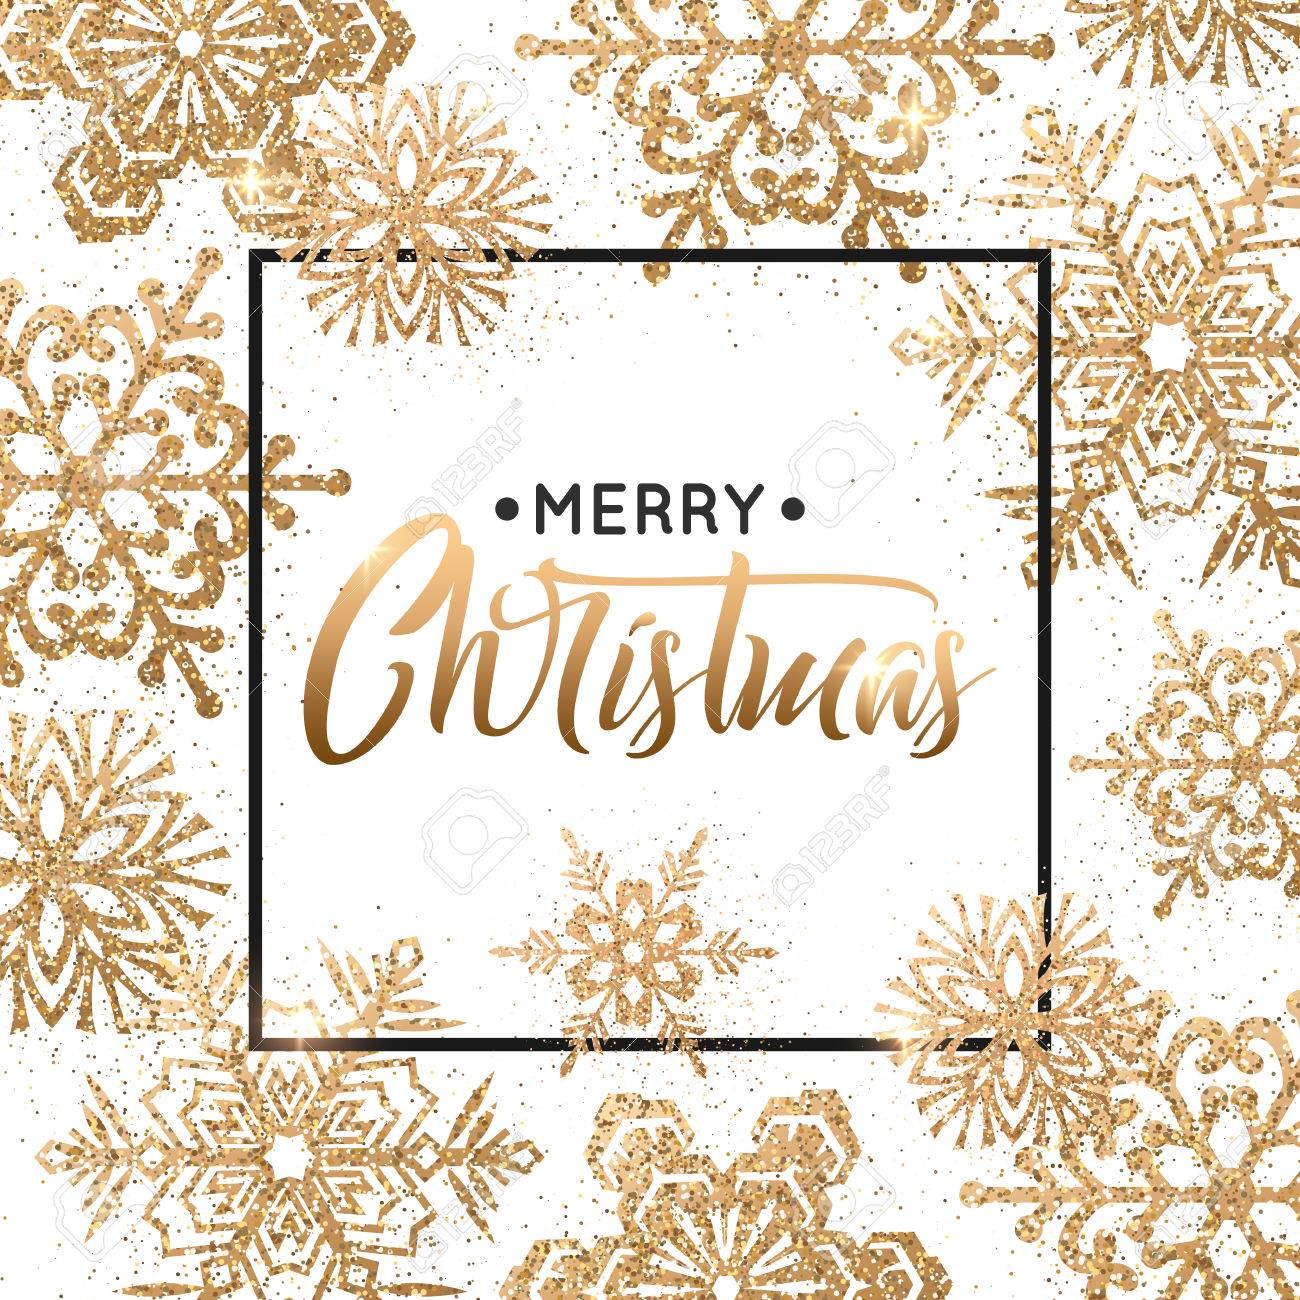 Elegant Christmas background with gold snowflakes for greeting card, holiday design. - 67182849